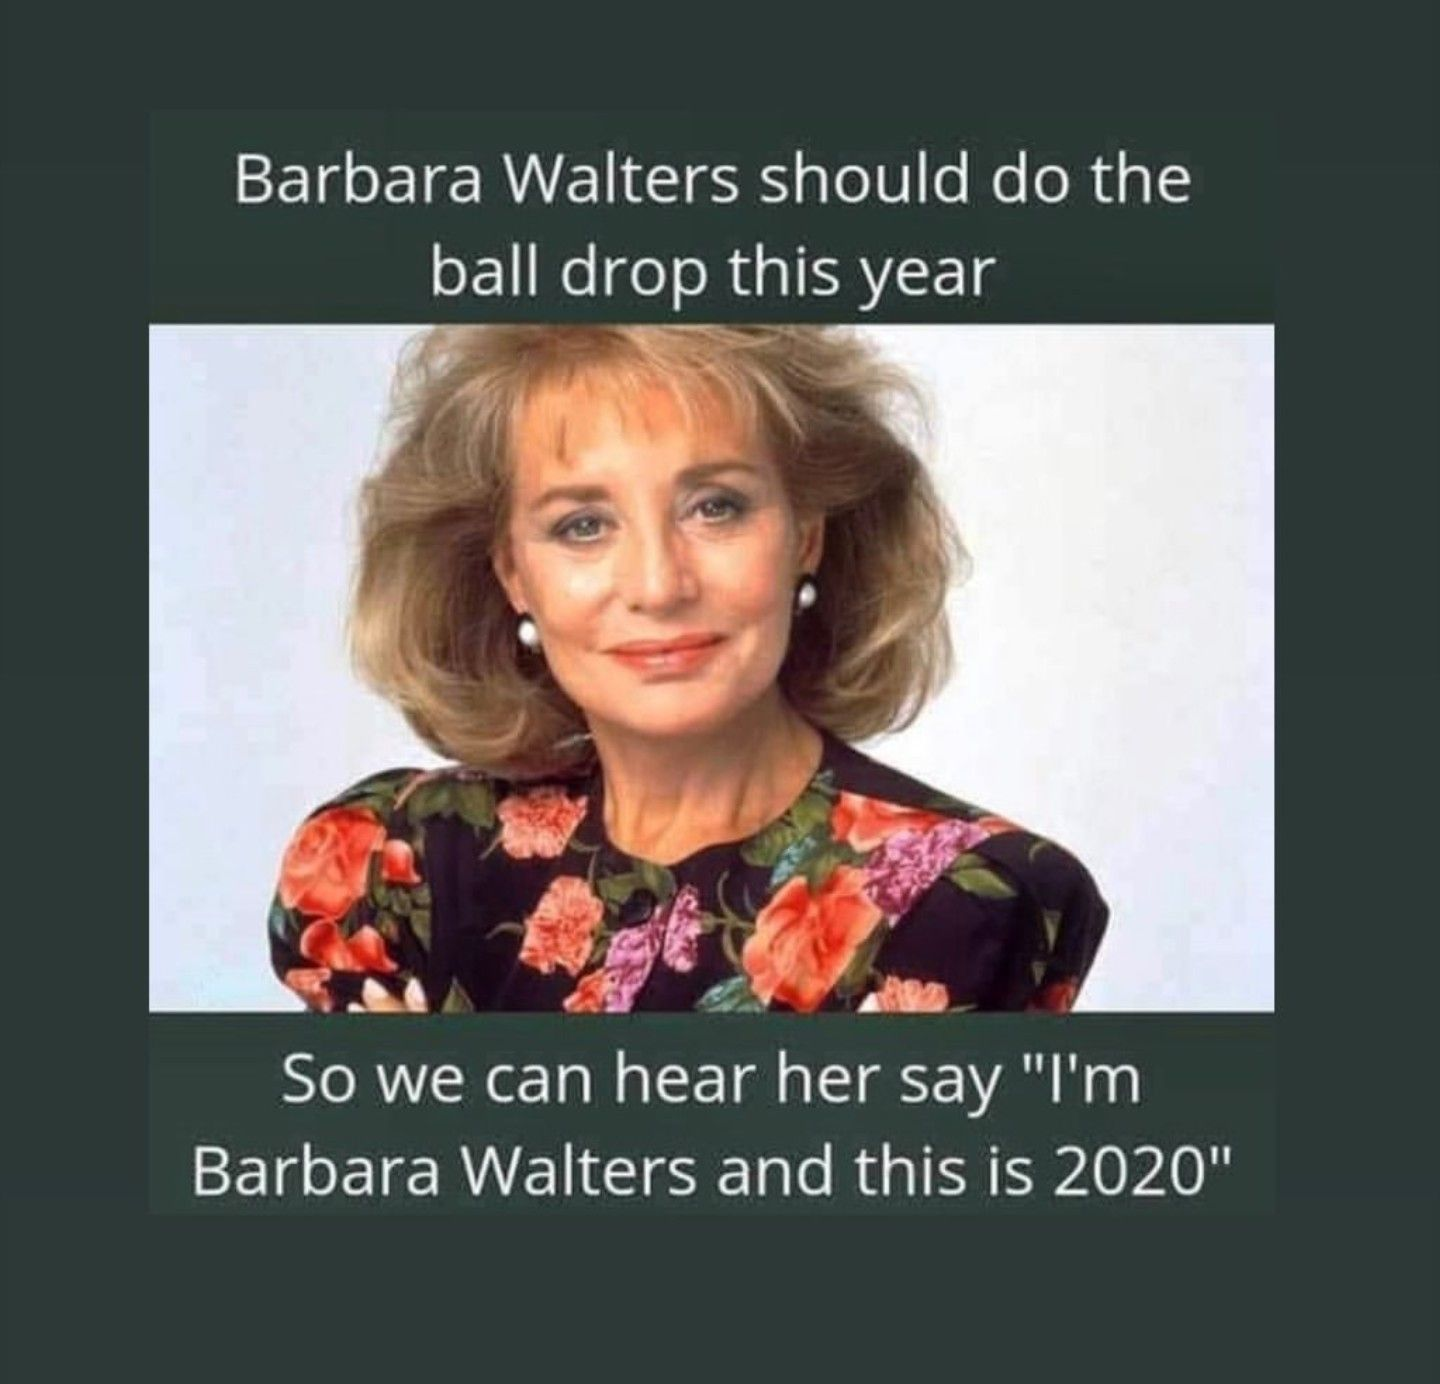 Happy New Year 2020 Barbara walters, Memes of the day